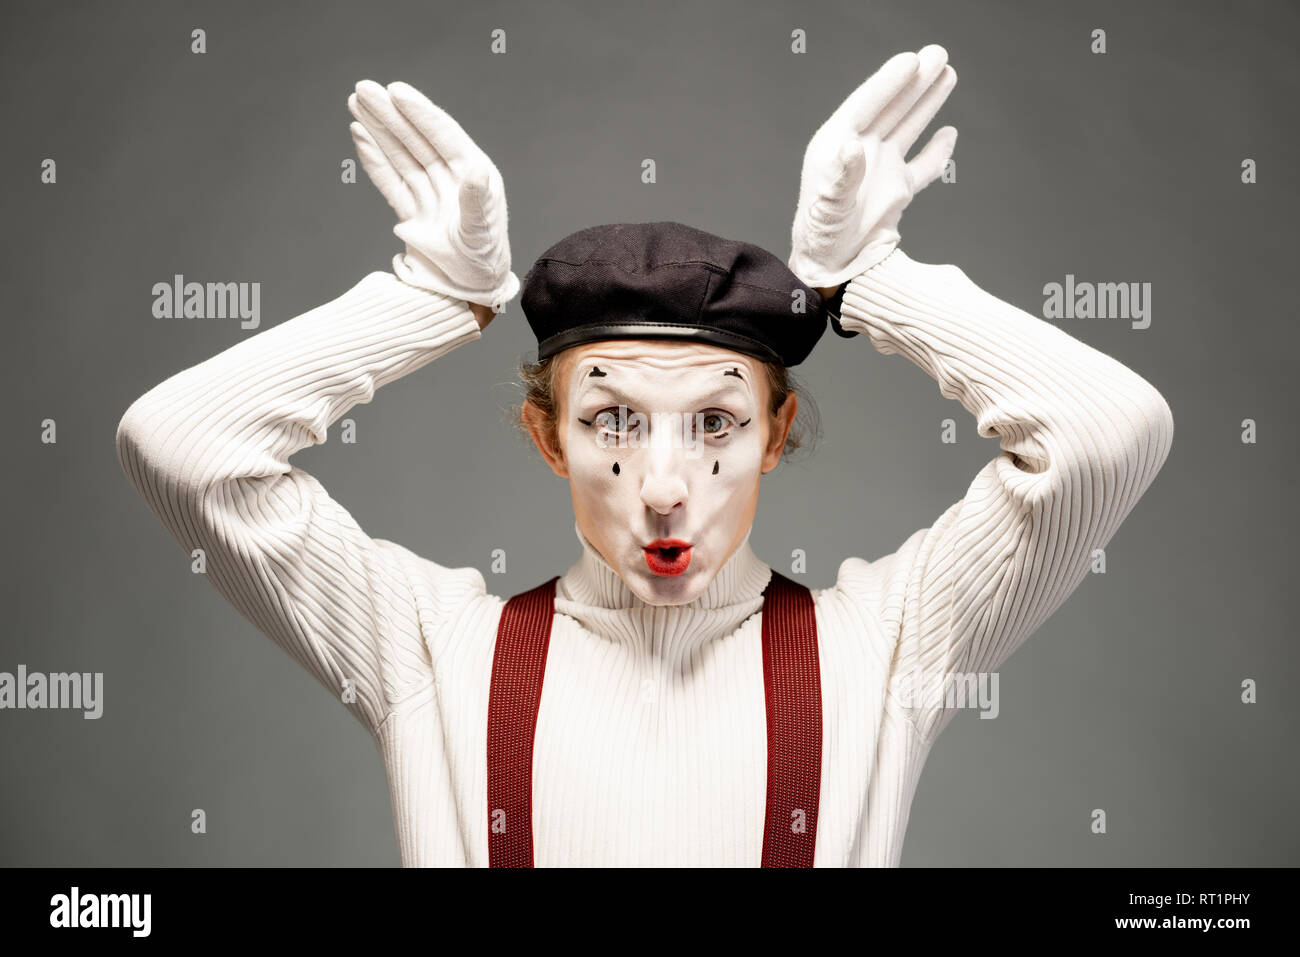 Portrait of a pantomime actor with white facial makeup posing with expressive emotions on the grey background indoors - Stock Image